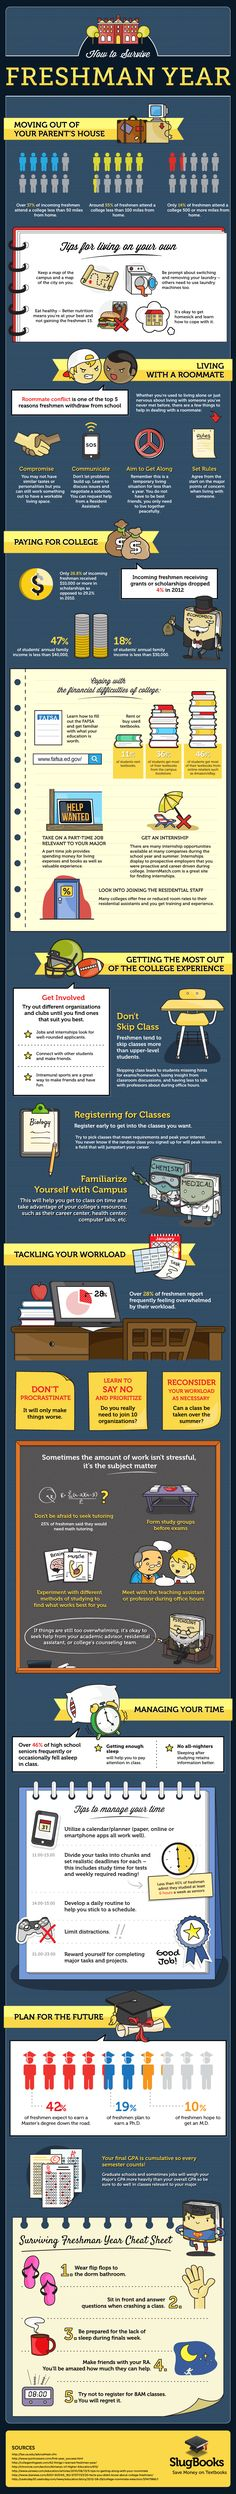 An infographic and tips for college students in their freshman year lifehack